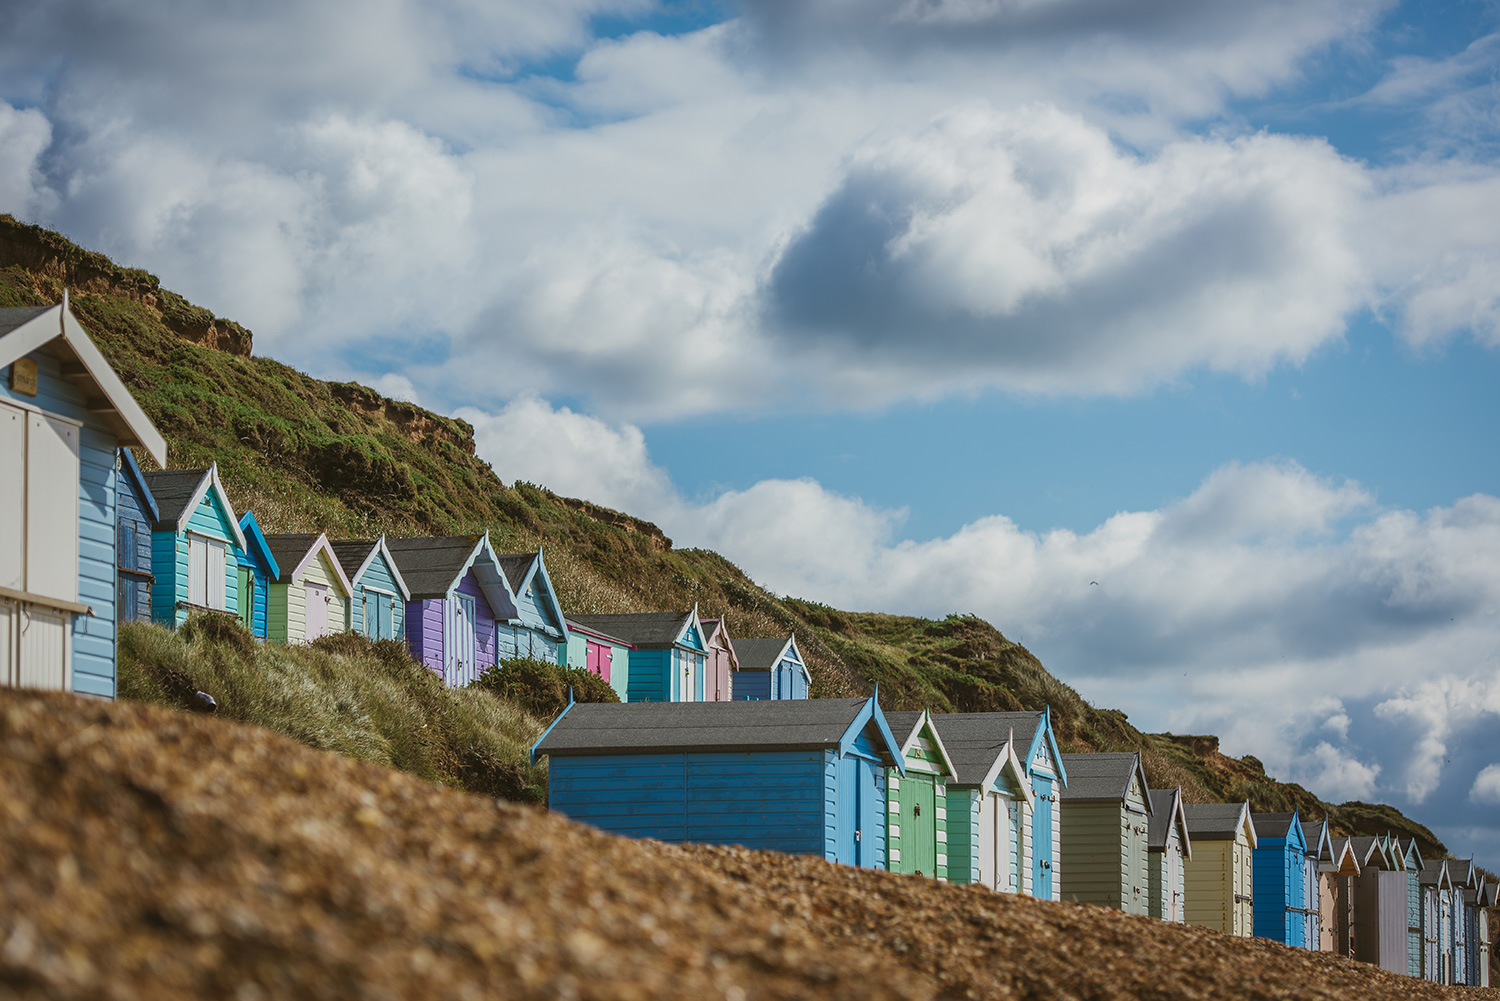 creative-commercial-lifestyle-photography-christchurch-bournemouth-dorset-57.jpg